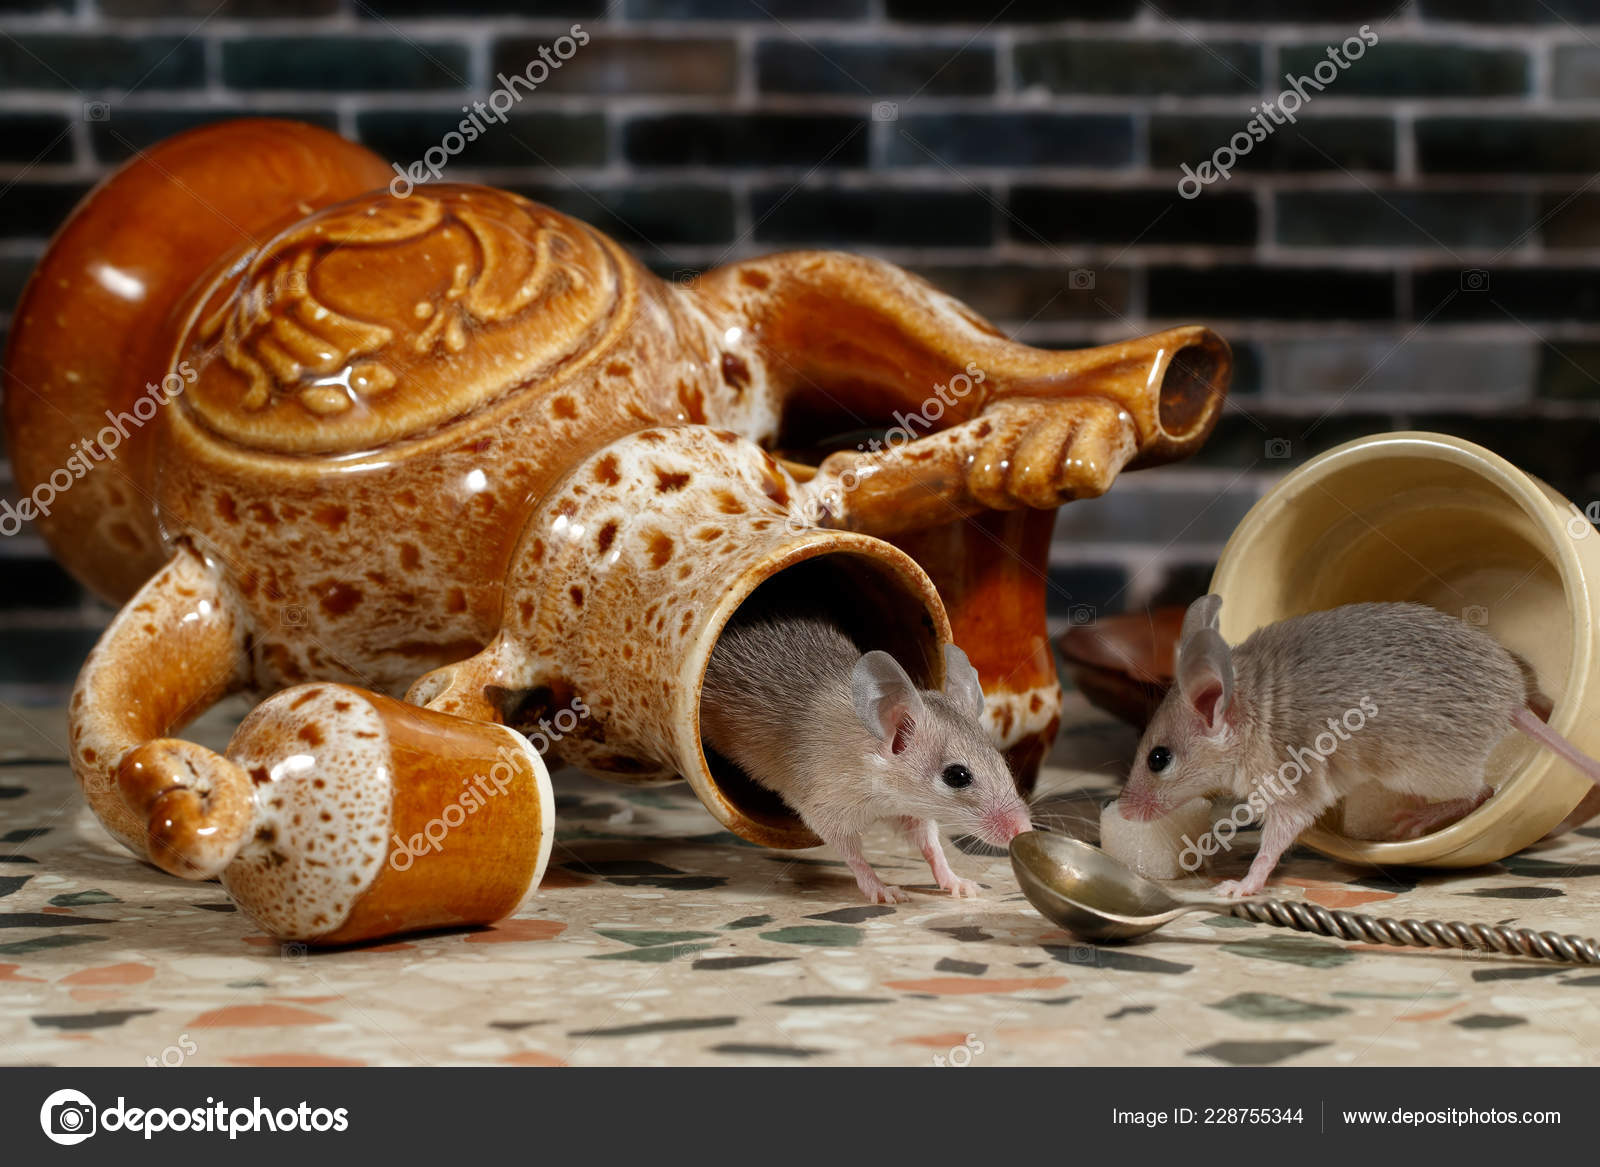 Two Mice Countertop Kitchen Background Brick Wall One Mouse ...